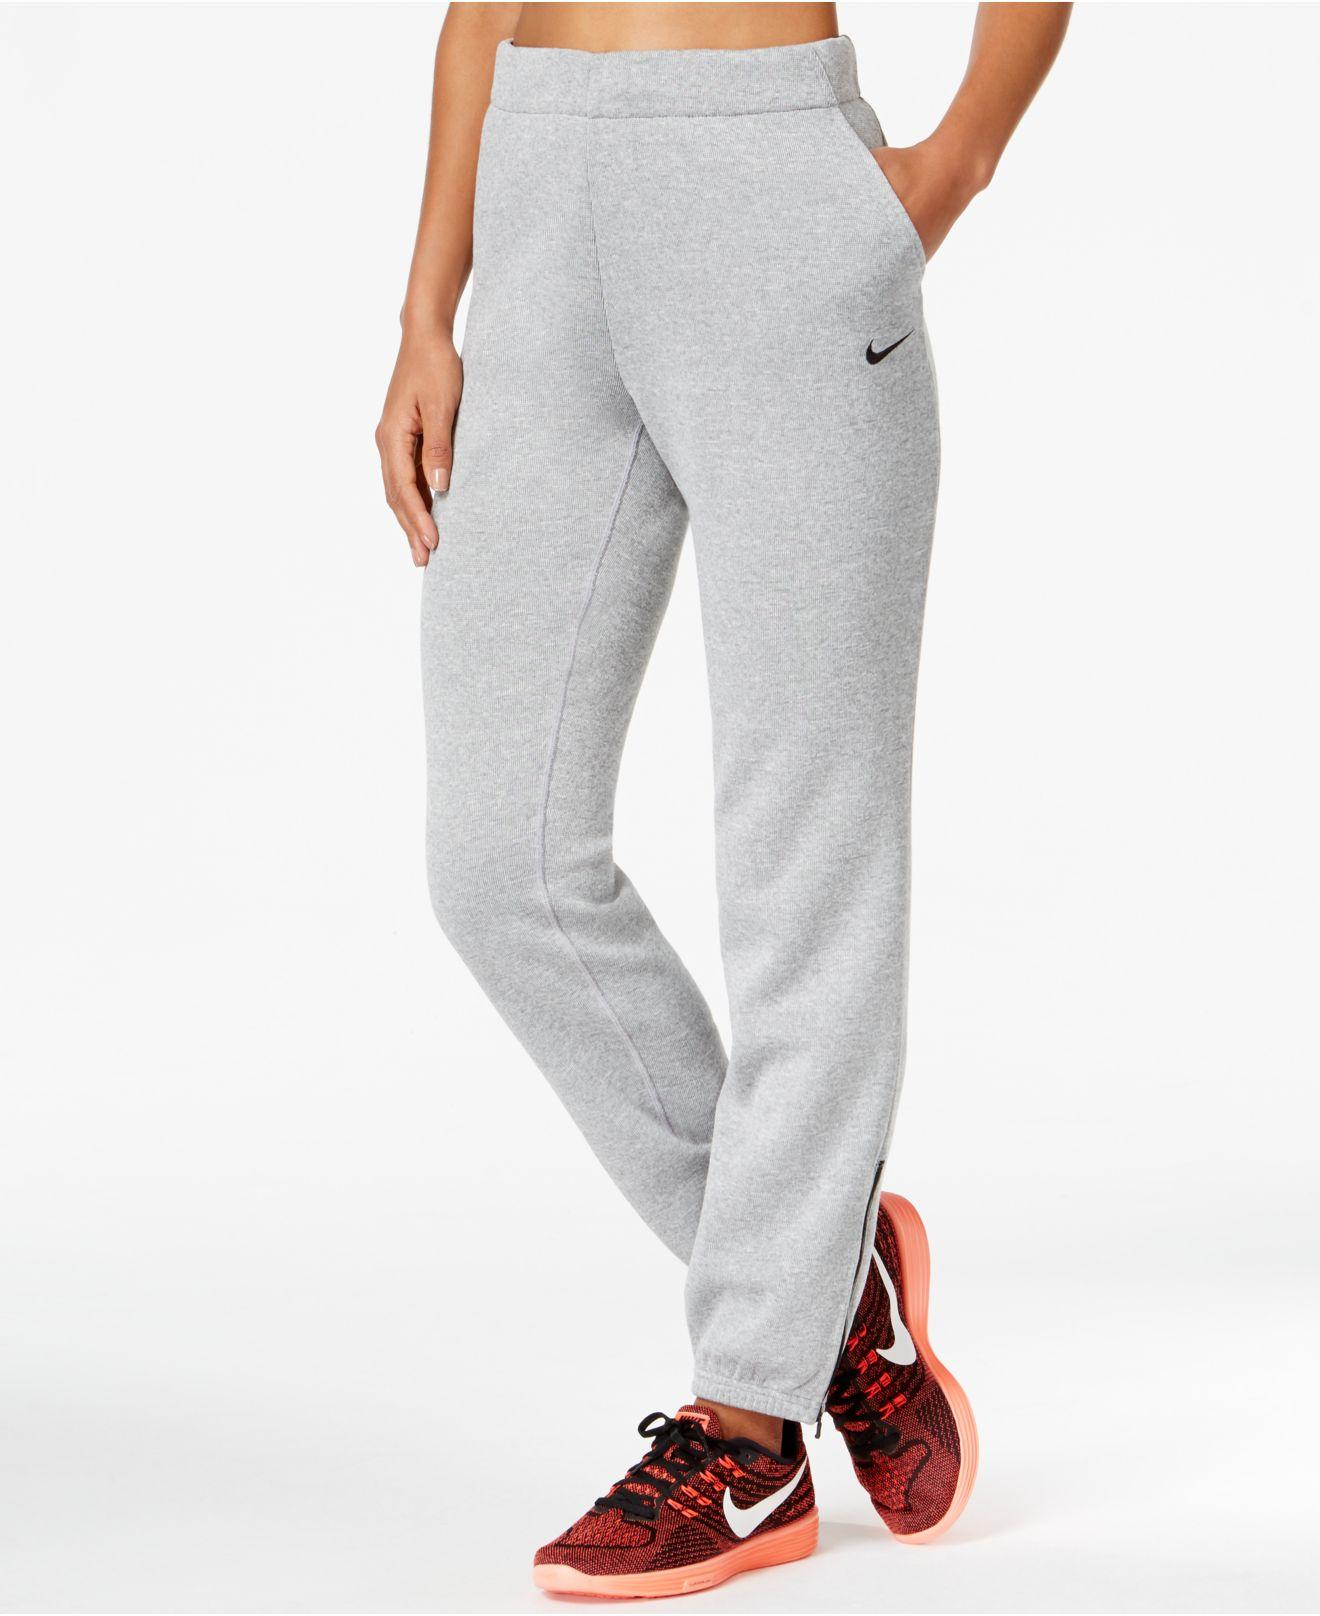 reputable site f01a5 e2a97 Lyst - Nike Hypernatural Therma Training Pants in Gray